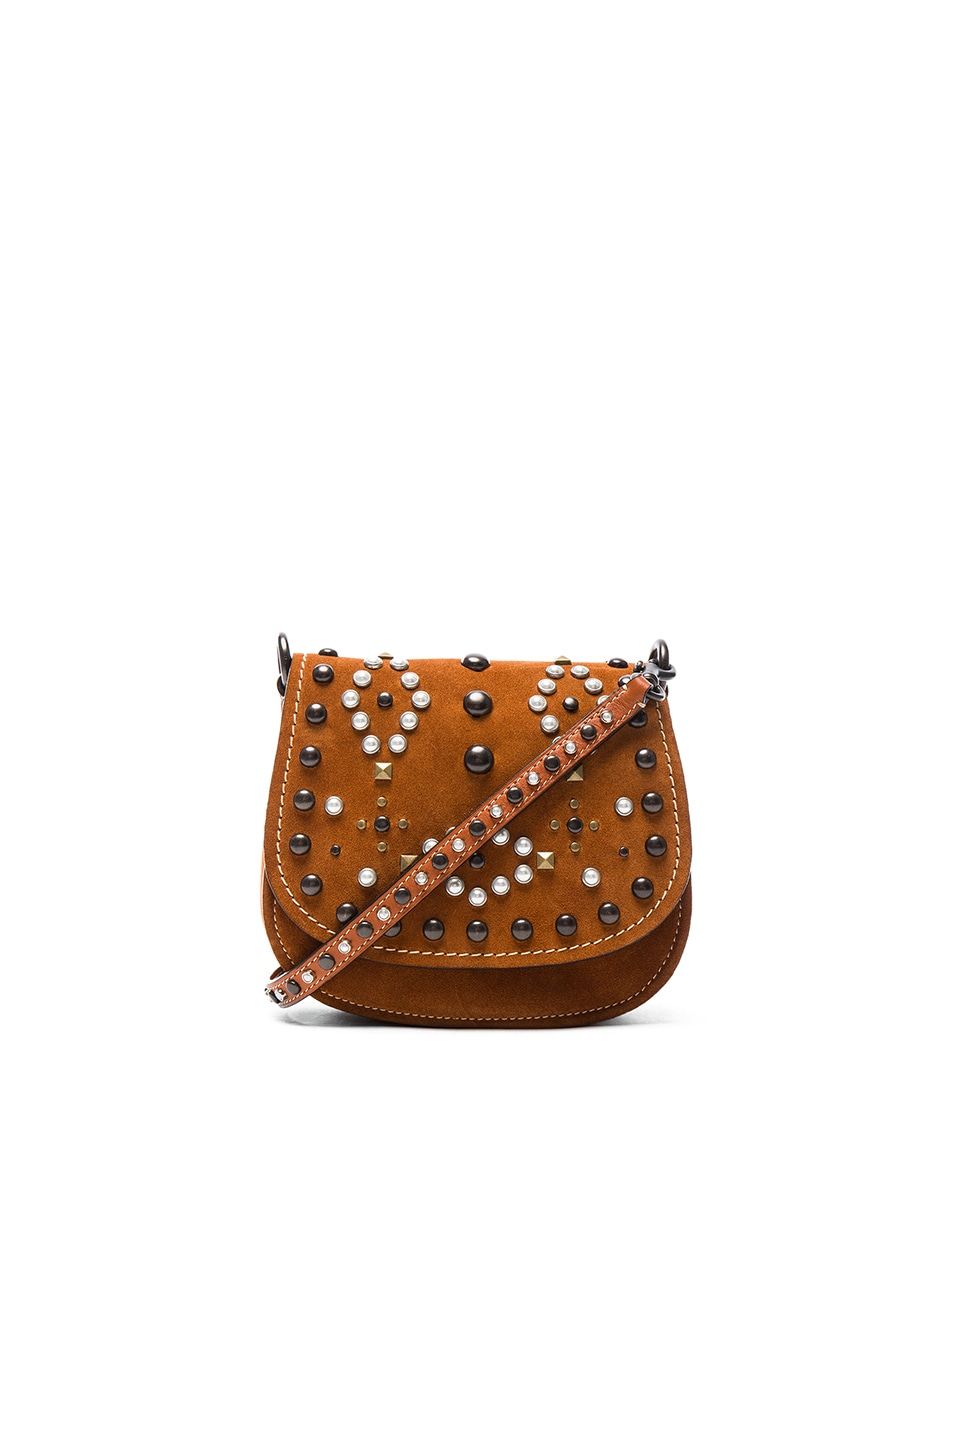 Image 1 of Coach 1941 Suede Western Rivets Saddle Bag 17 in Ginger